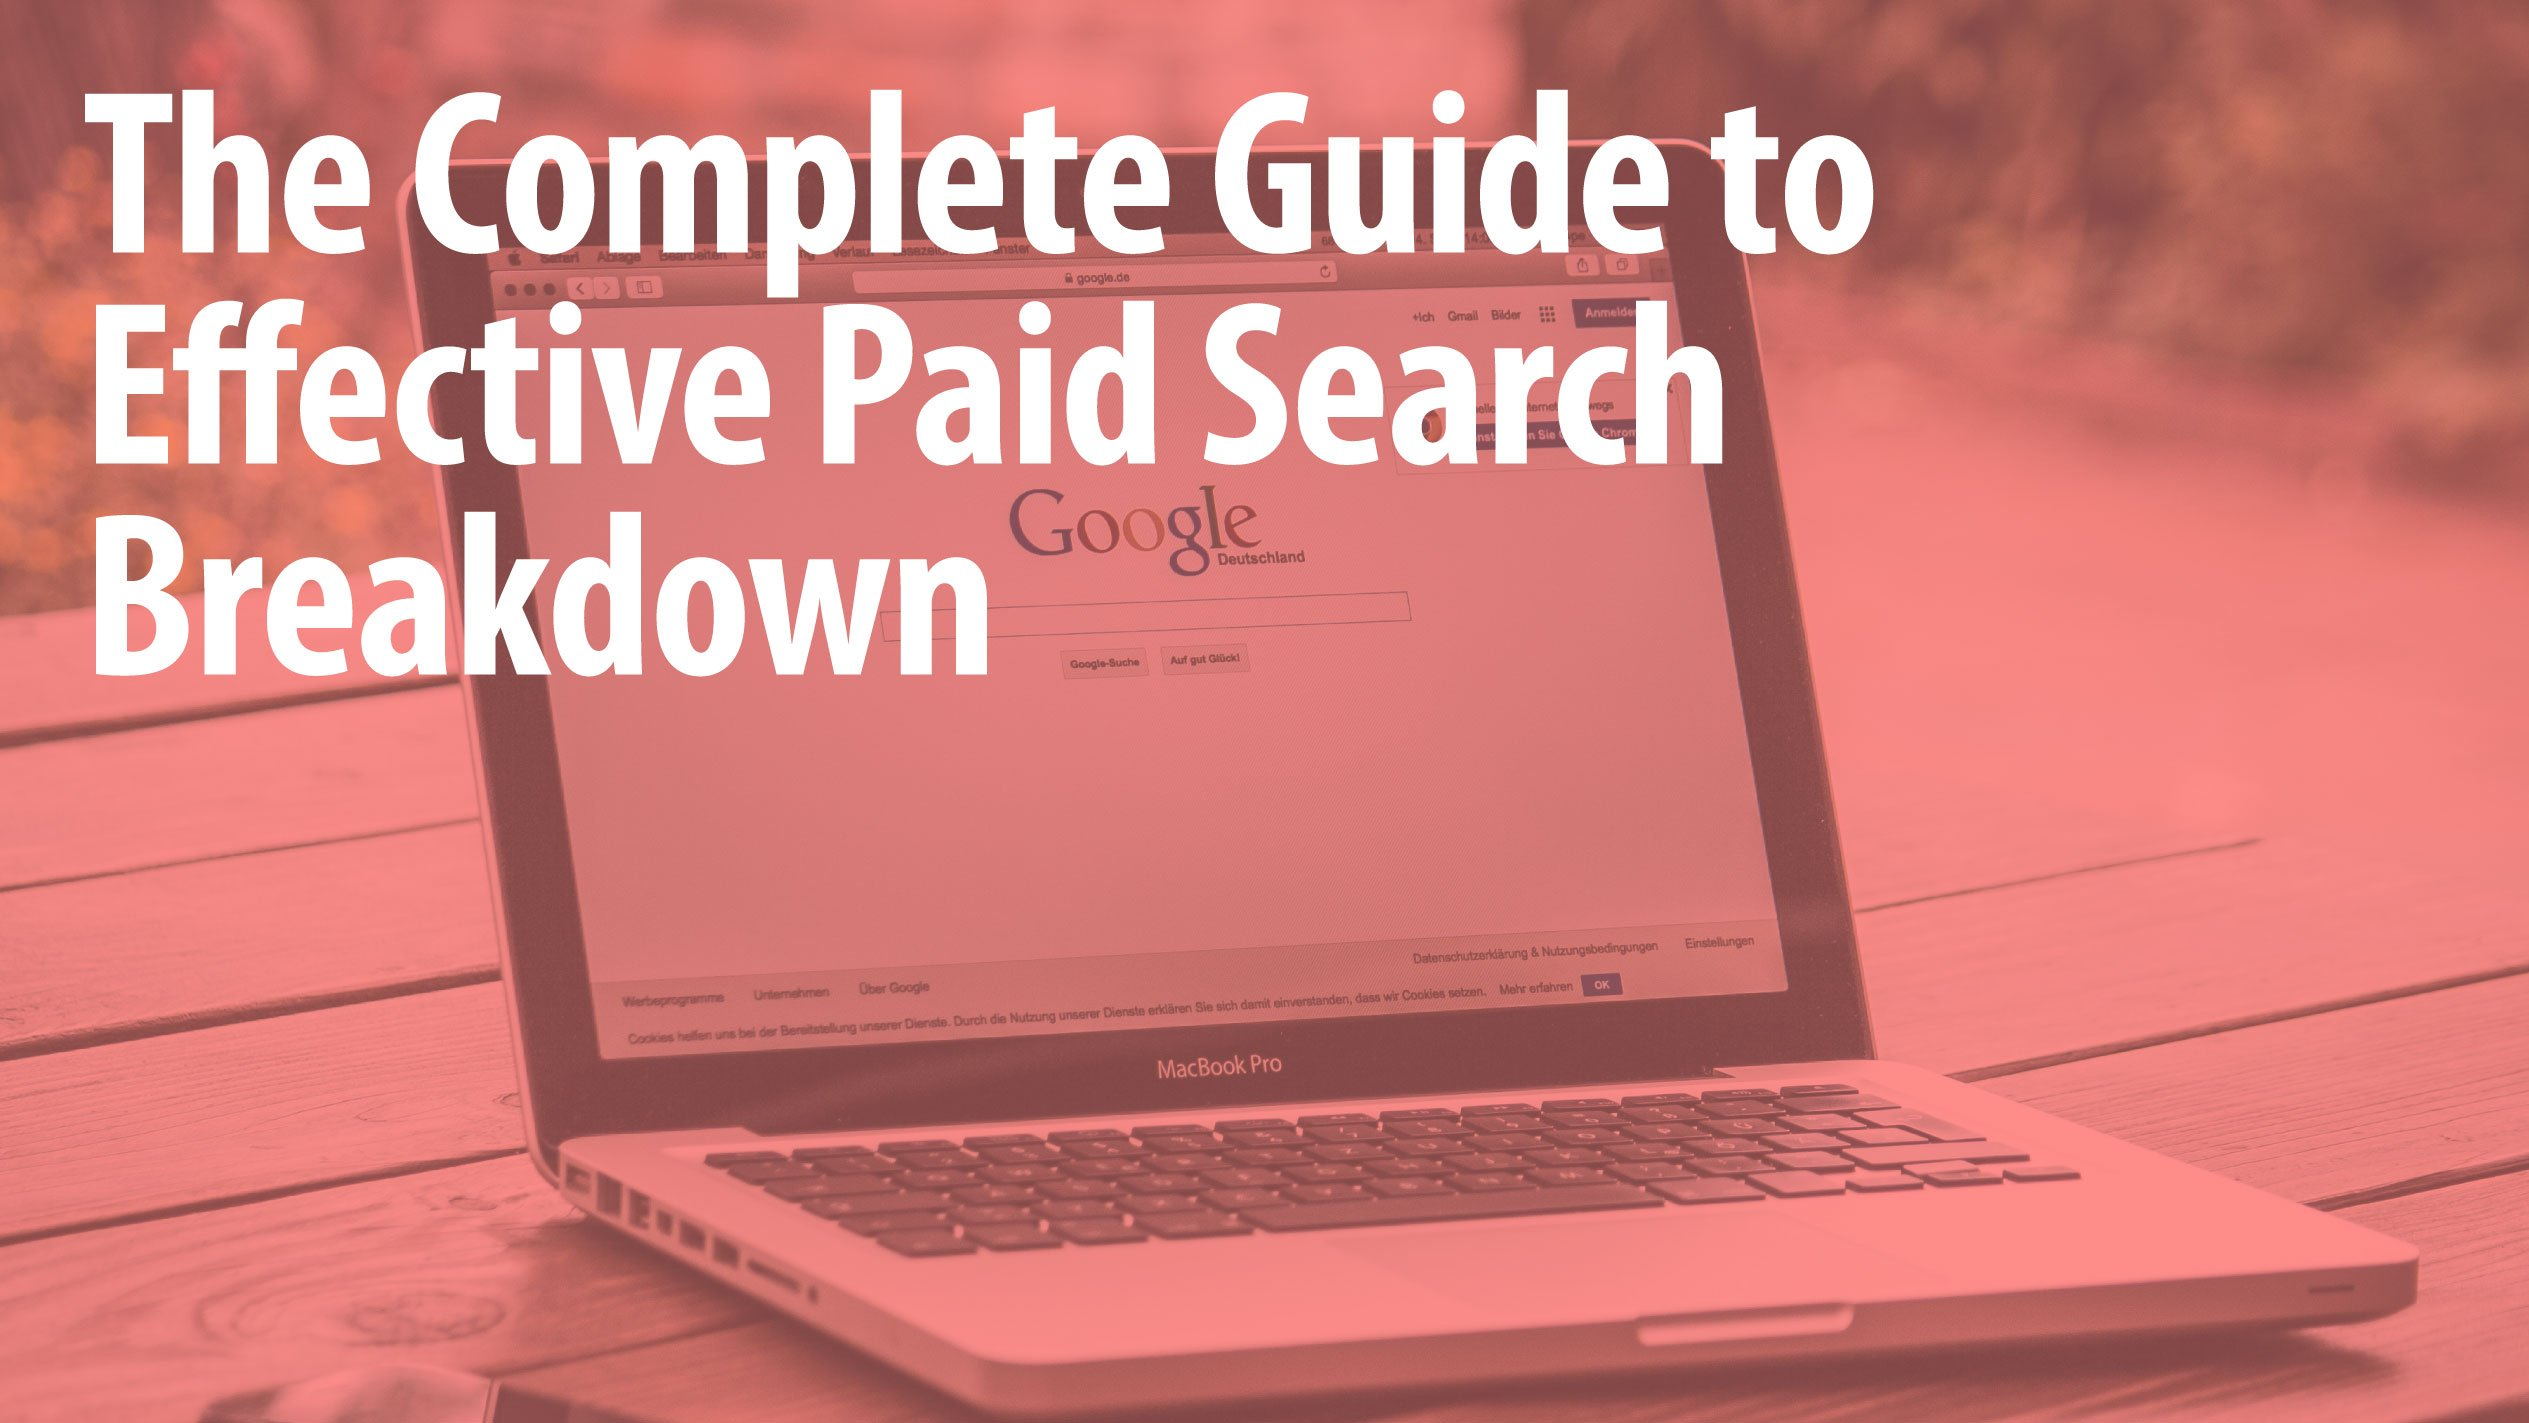 The Complete Guide to Effective Paid Search Breakdown